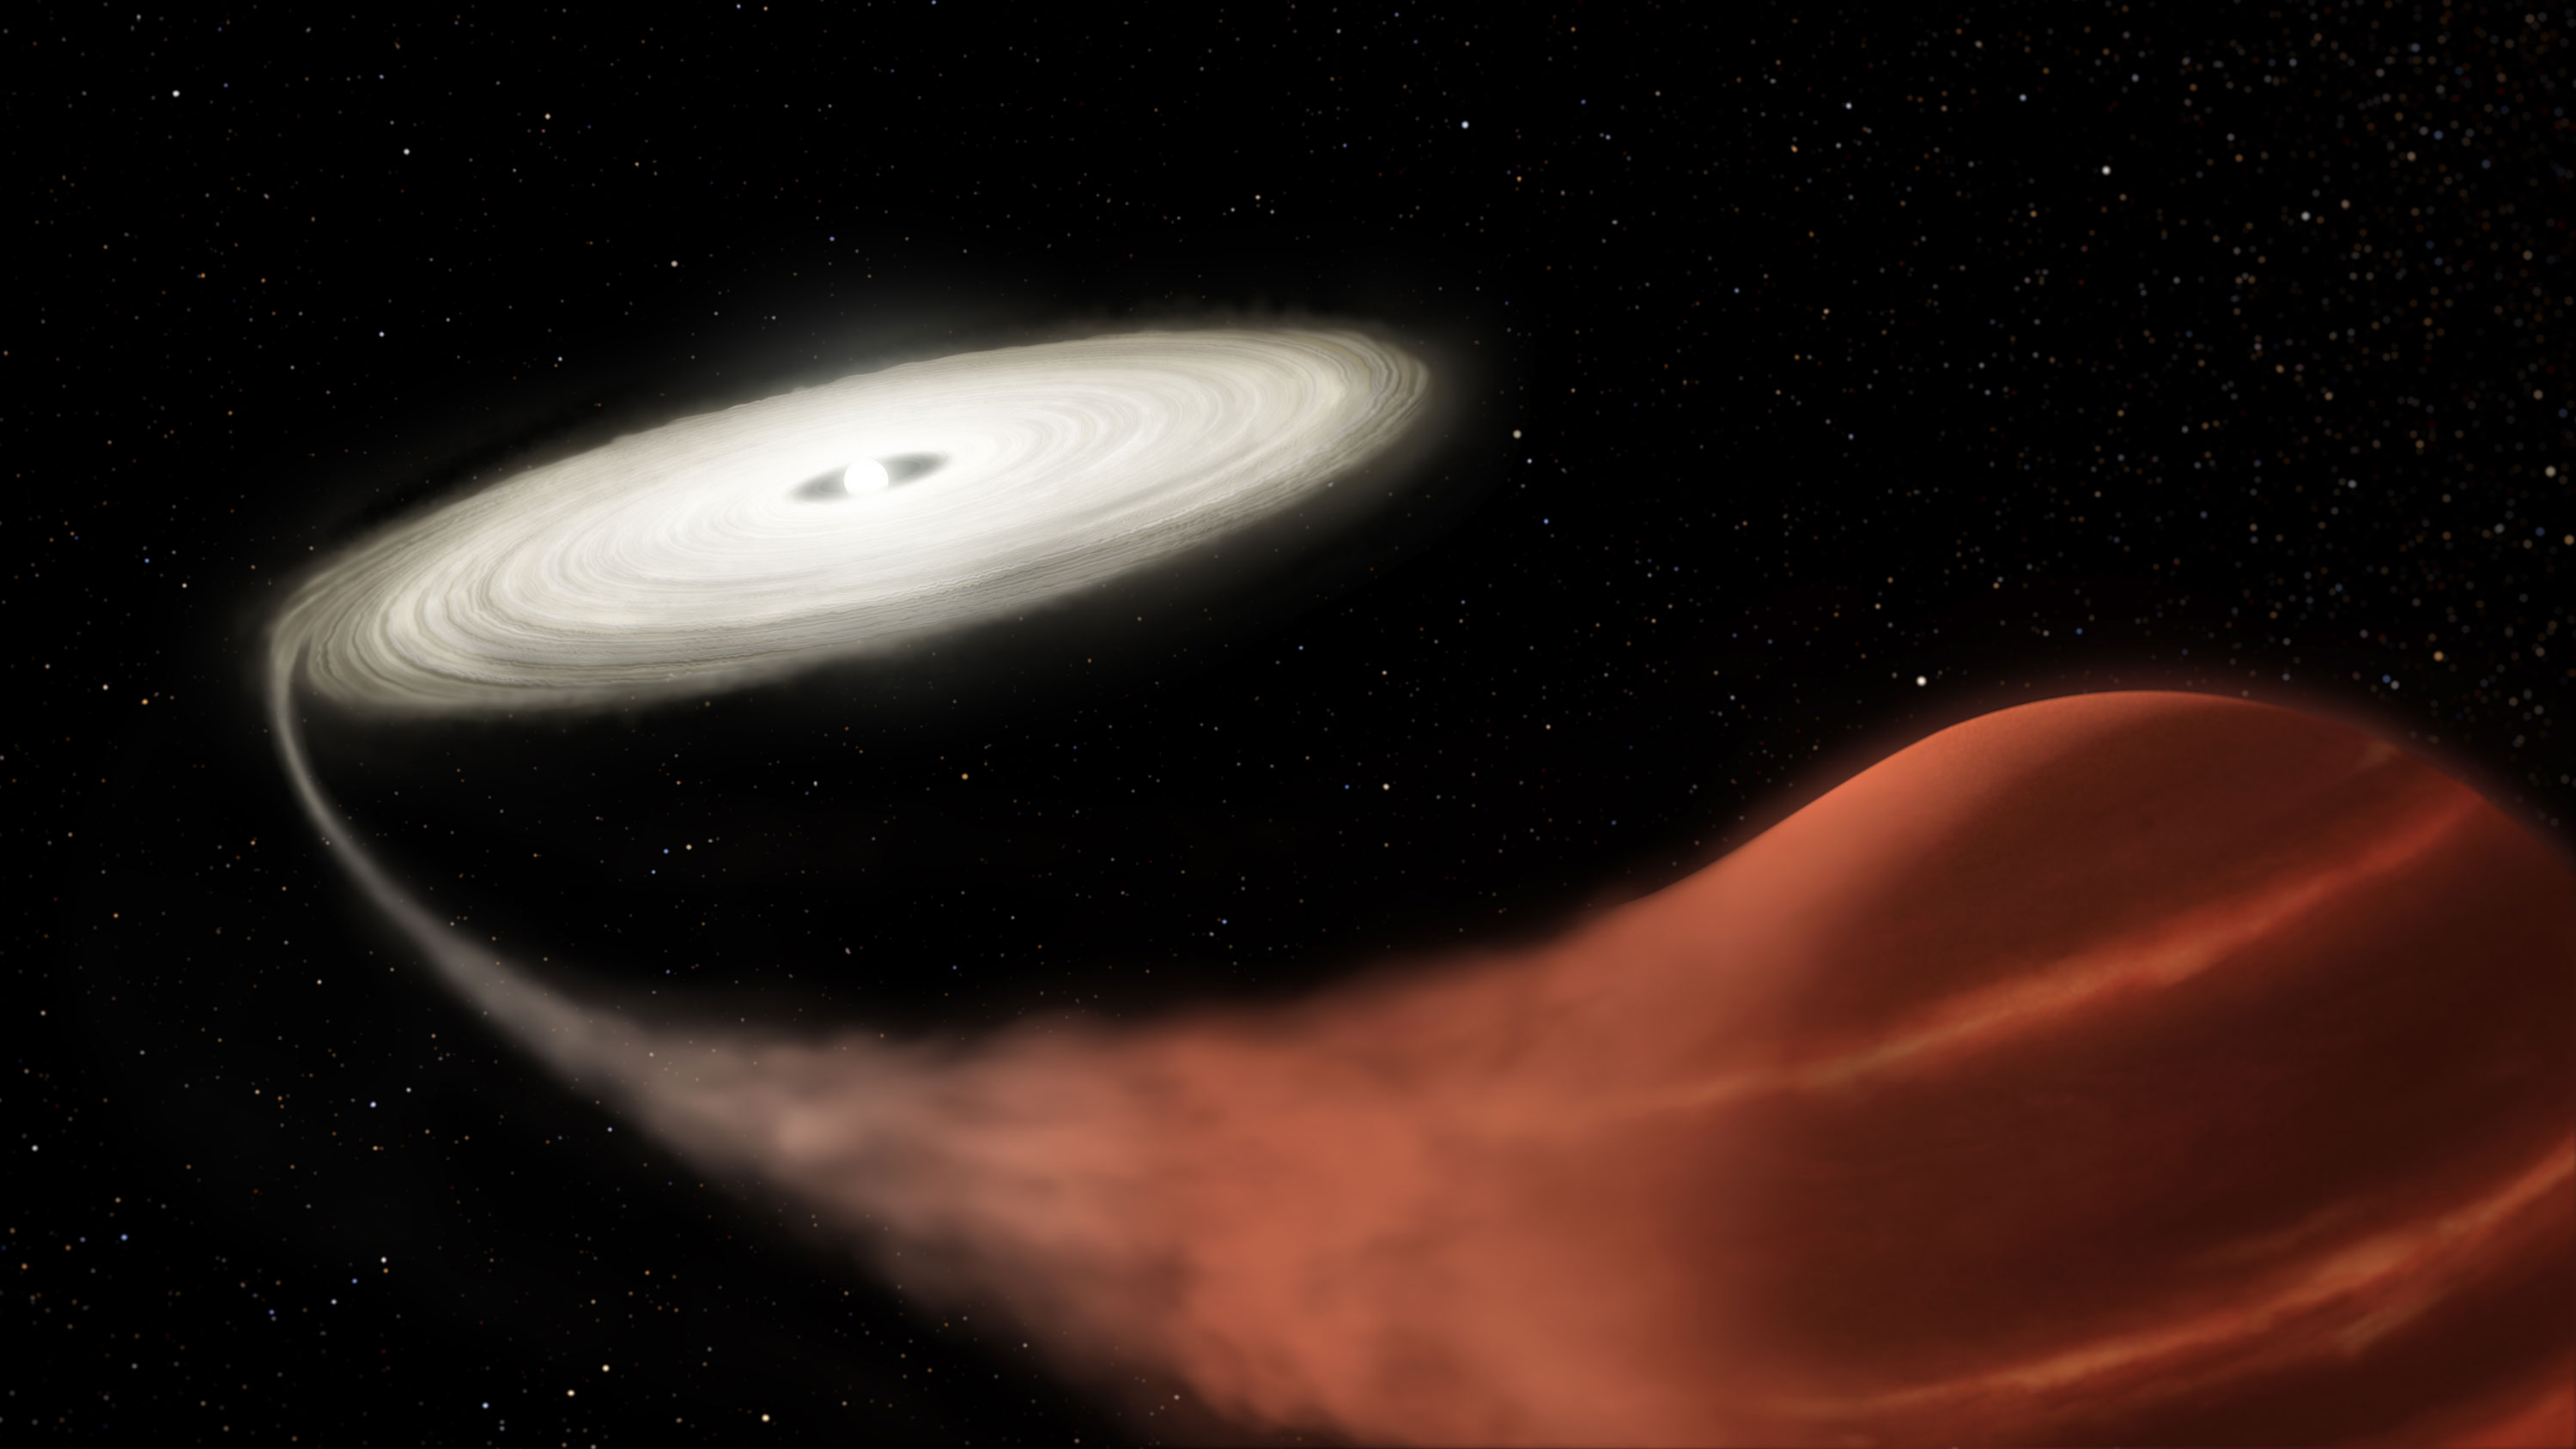 Vampire star system shows one star gorging on another